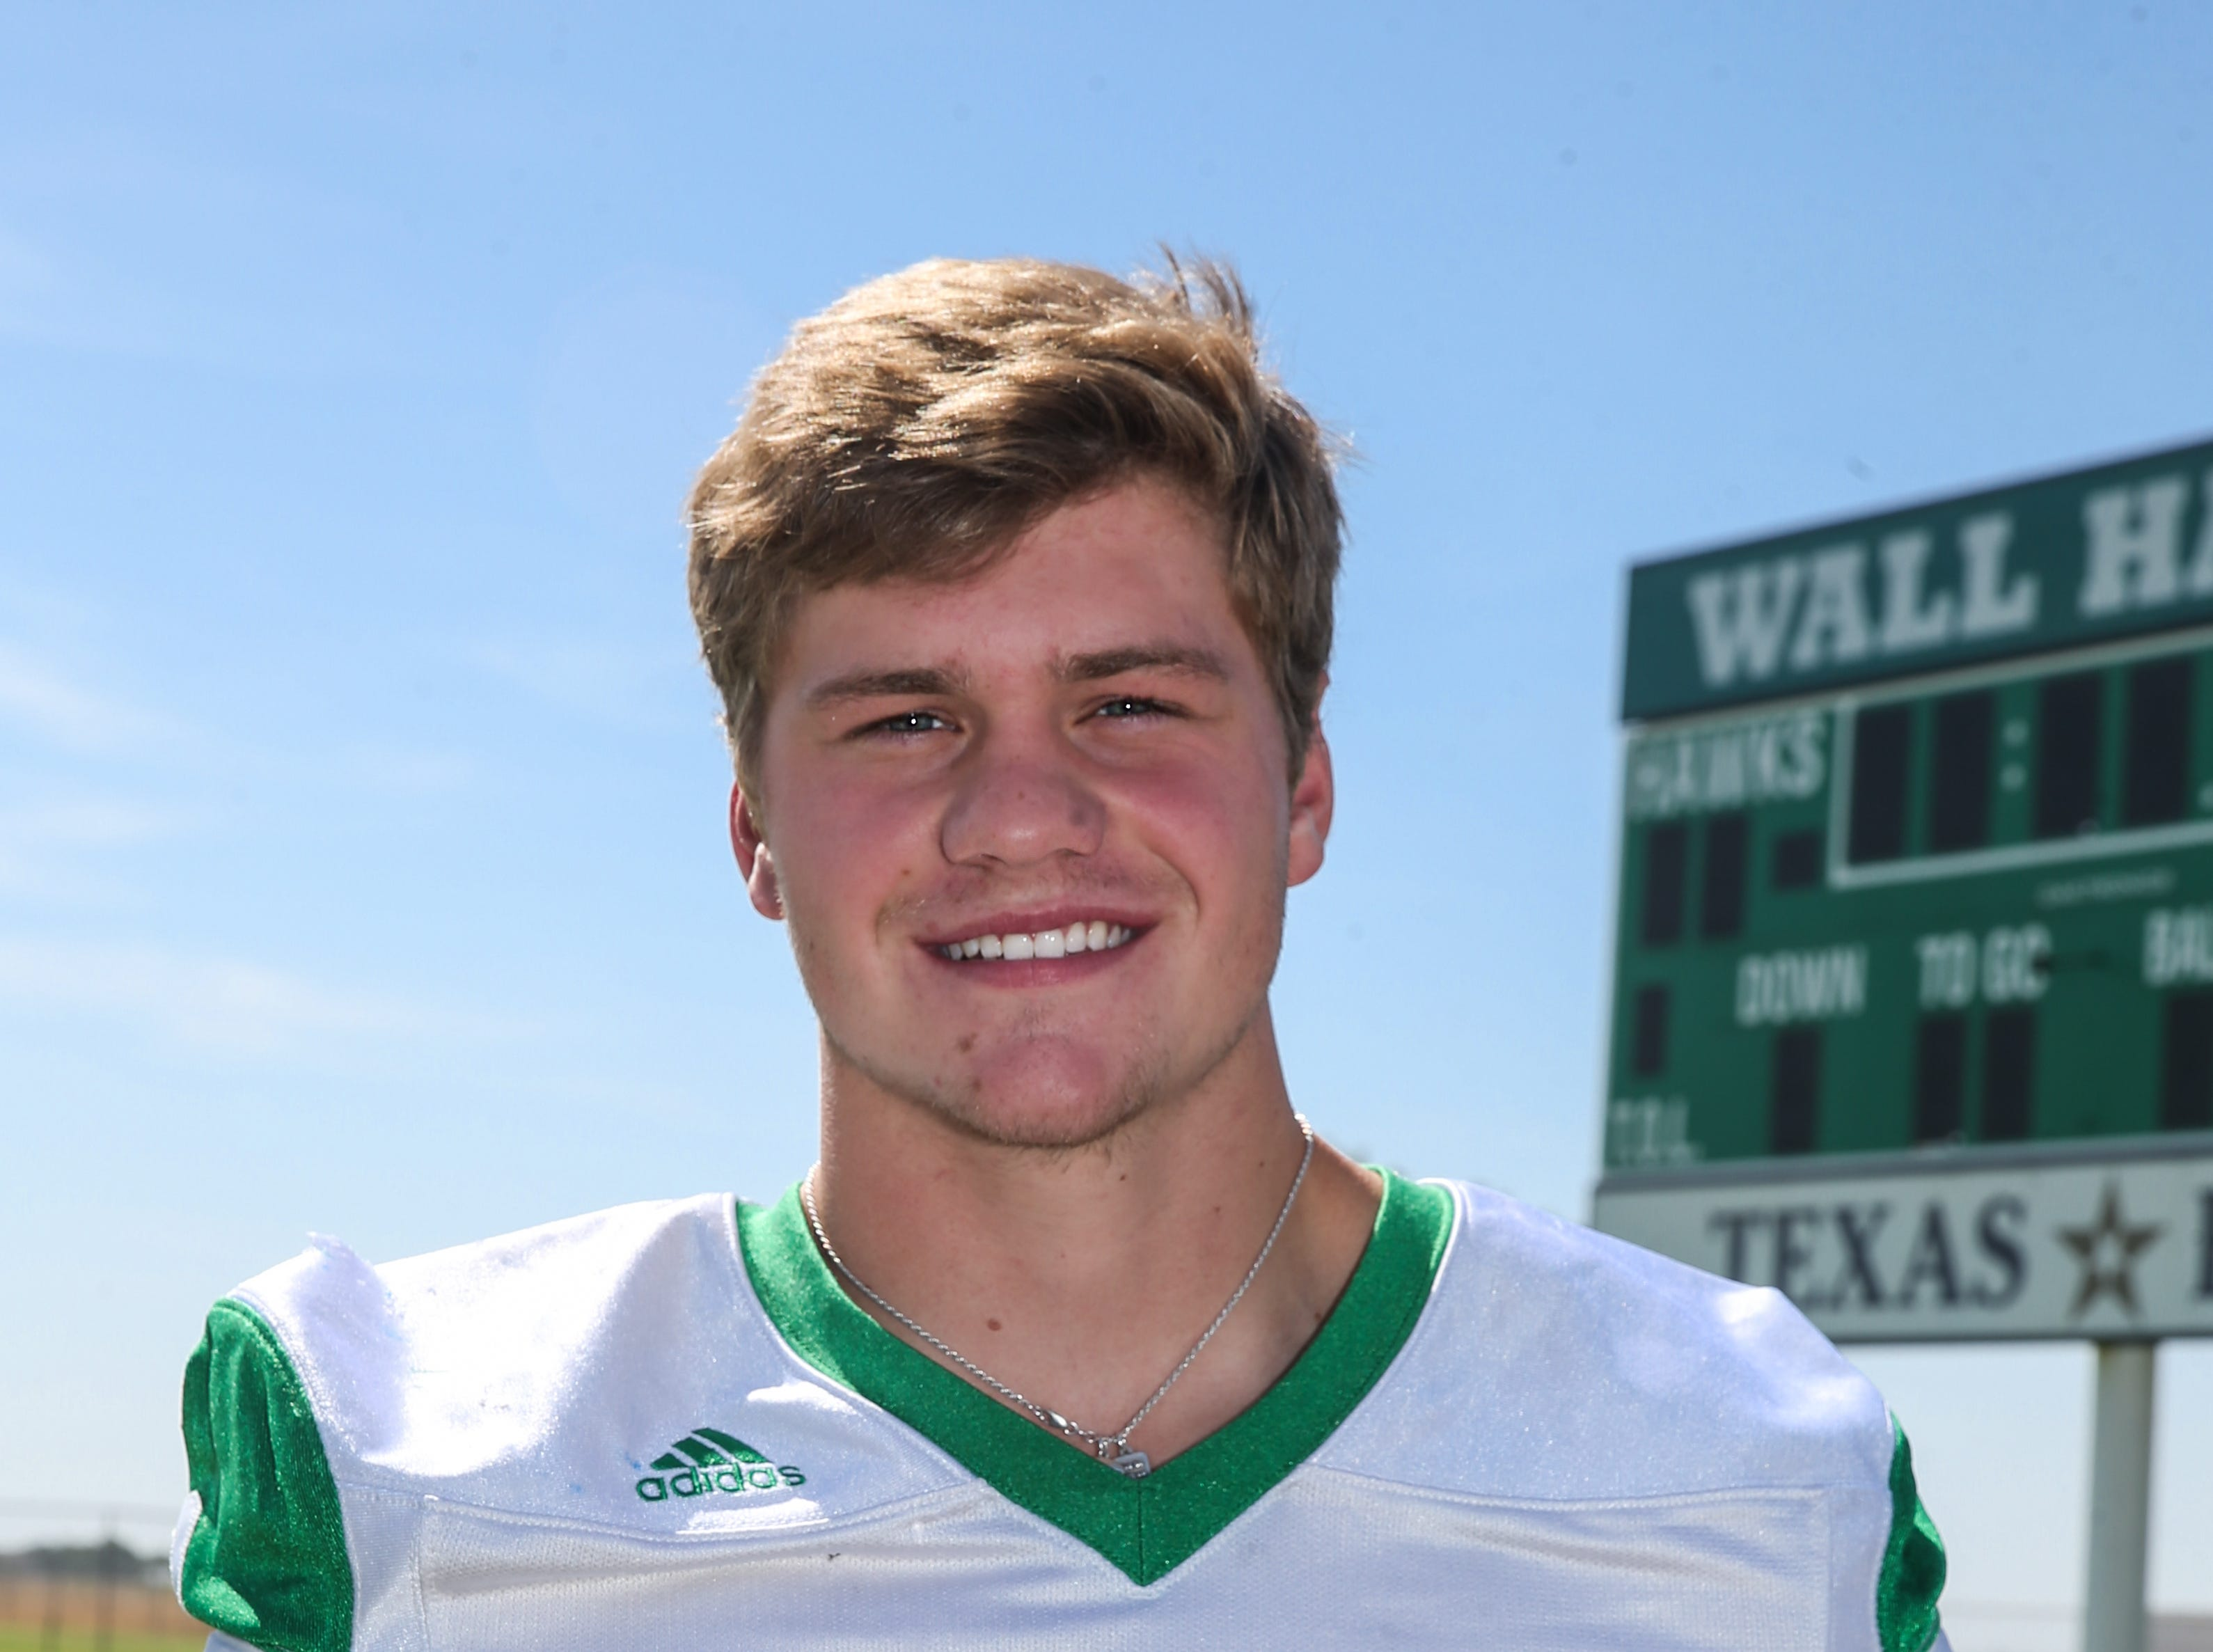 Drake Holifield, Wall, Defensive back, 6-1, 175, Sr.  Scouting report: A first-team all-district safety last year, Holifield will be one of the leaders of the Hawks' defense in 2018. He could also make an impact on offense as a running back. He showed his athleticism by taking third place in the 110 hurdles at the state track meet as a sophomore, followed by a fifth-place finish last year.